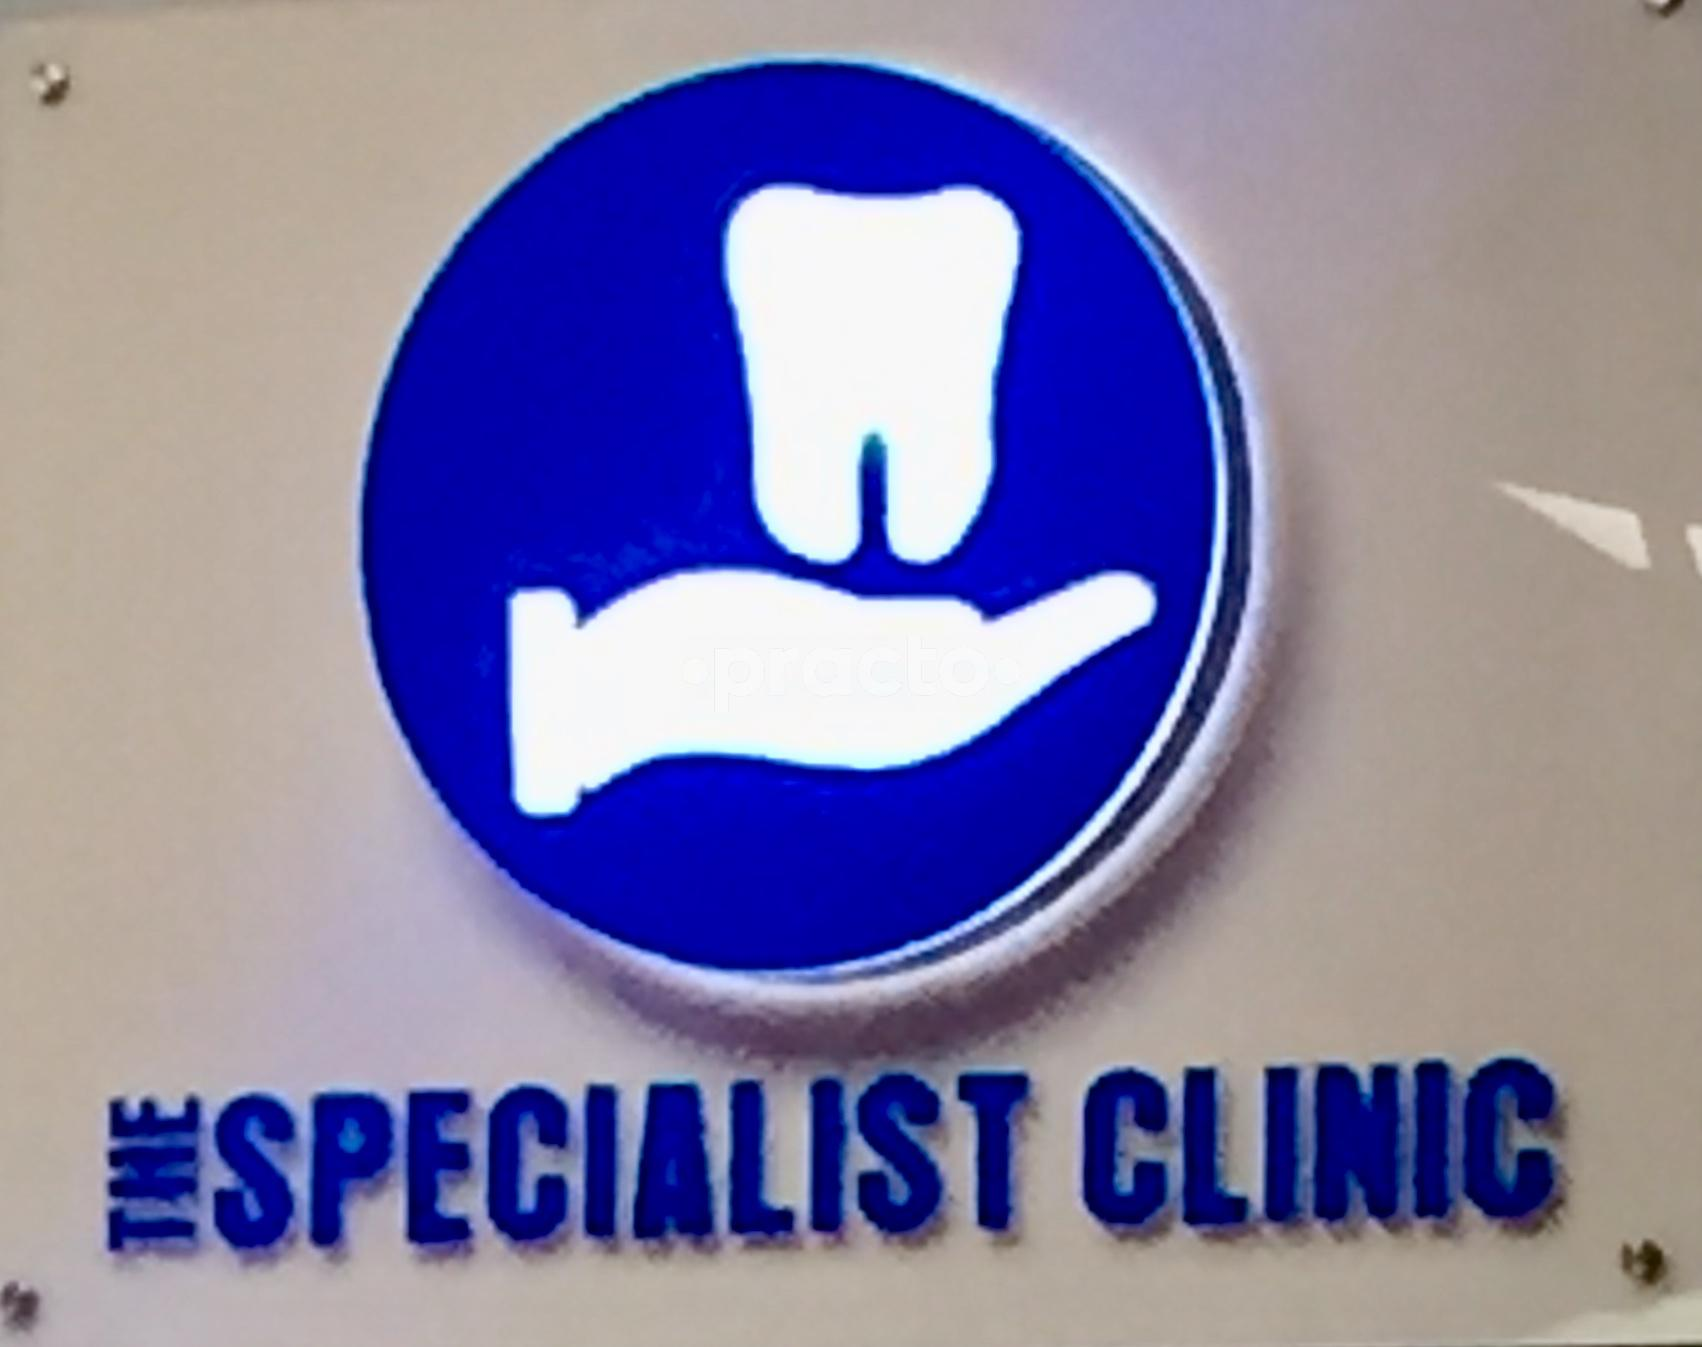 The Specialist Clinic